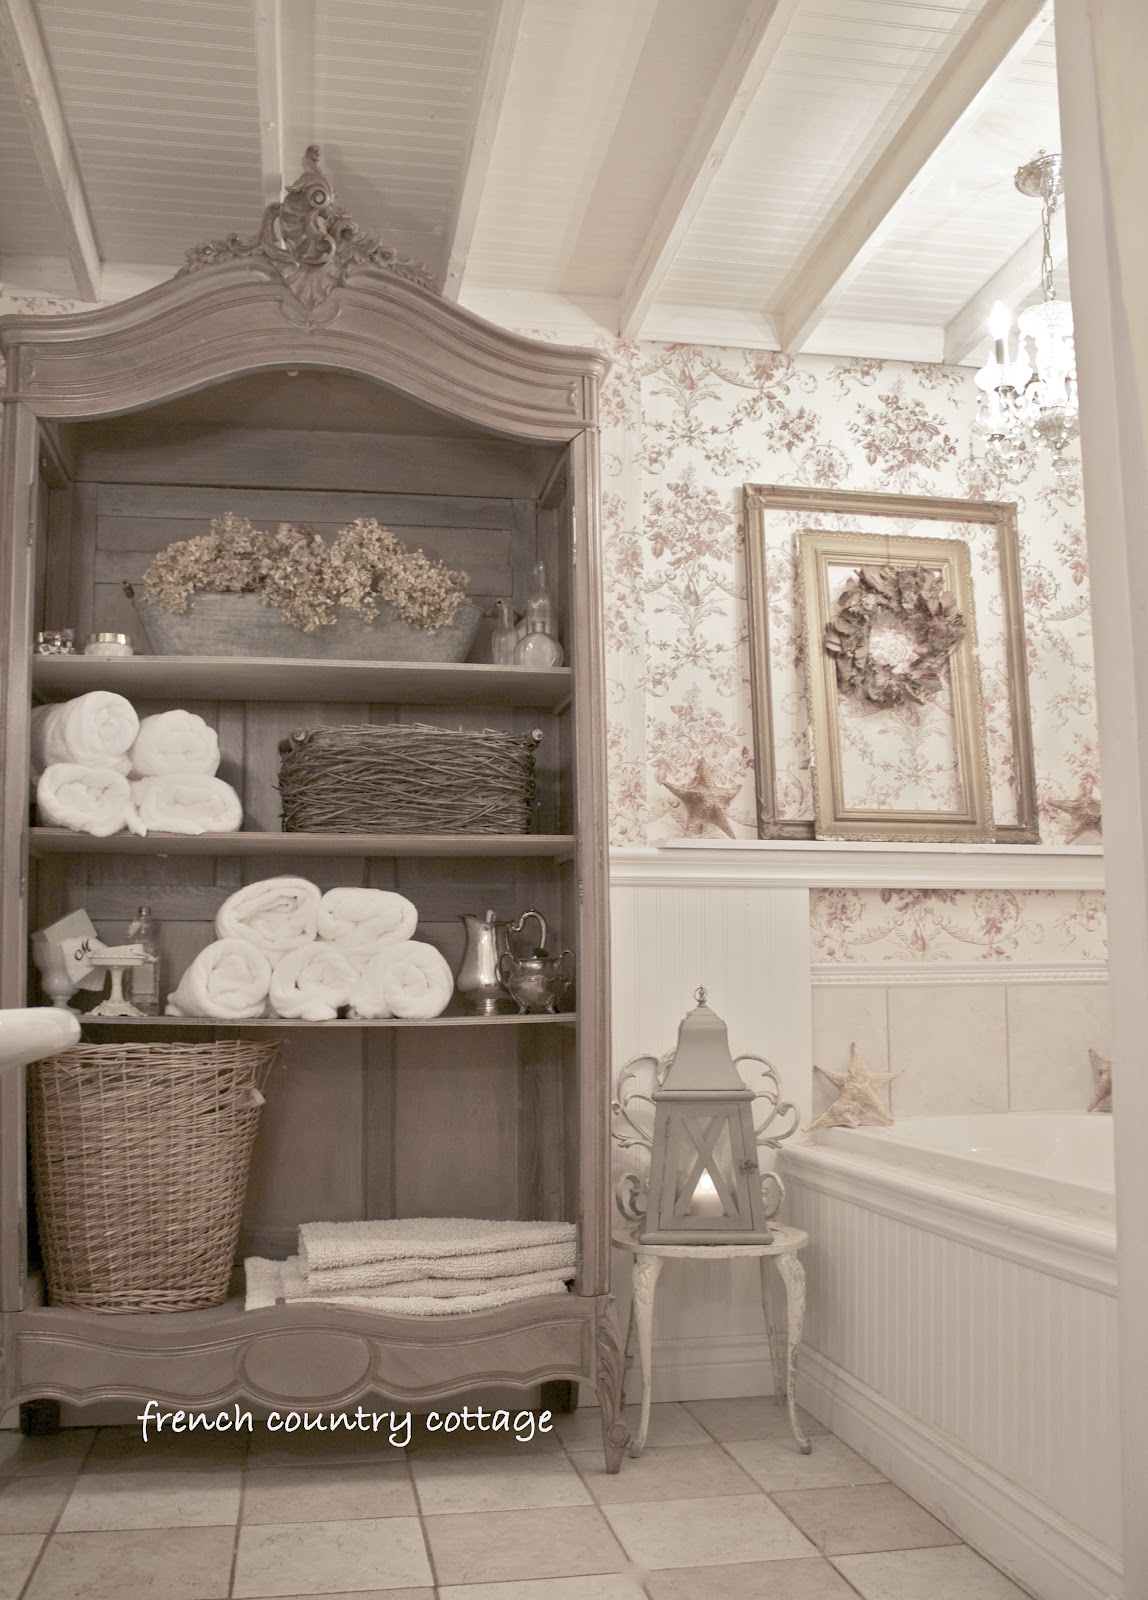 Cottage bathroom inspirations french country cottage for Images of country bathrooms